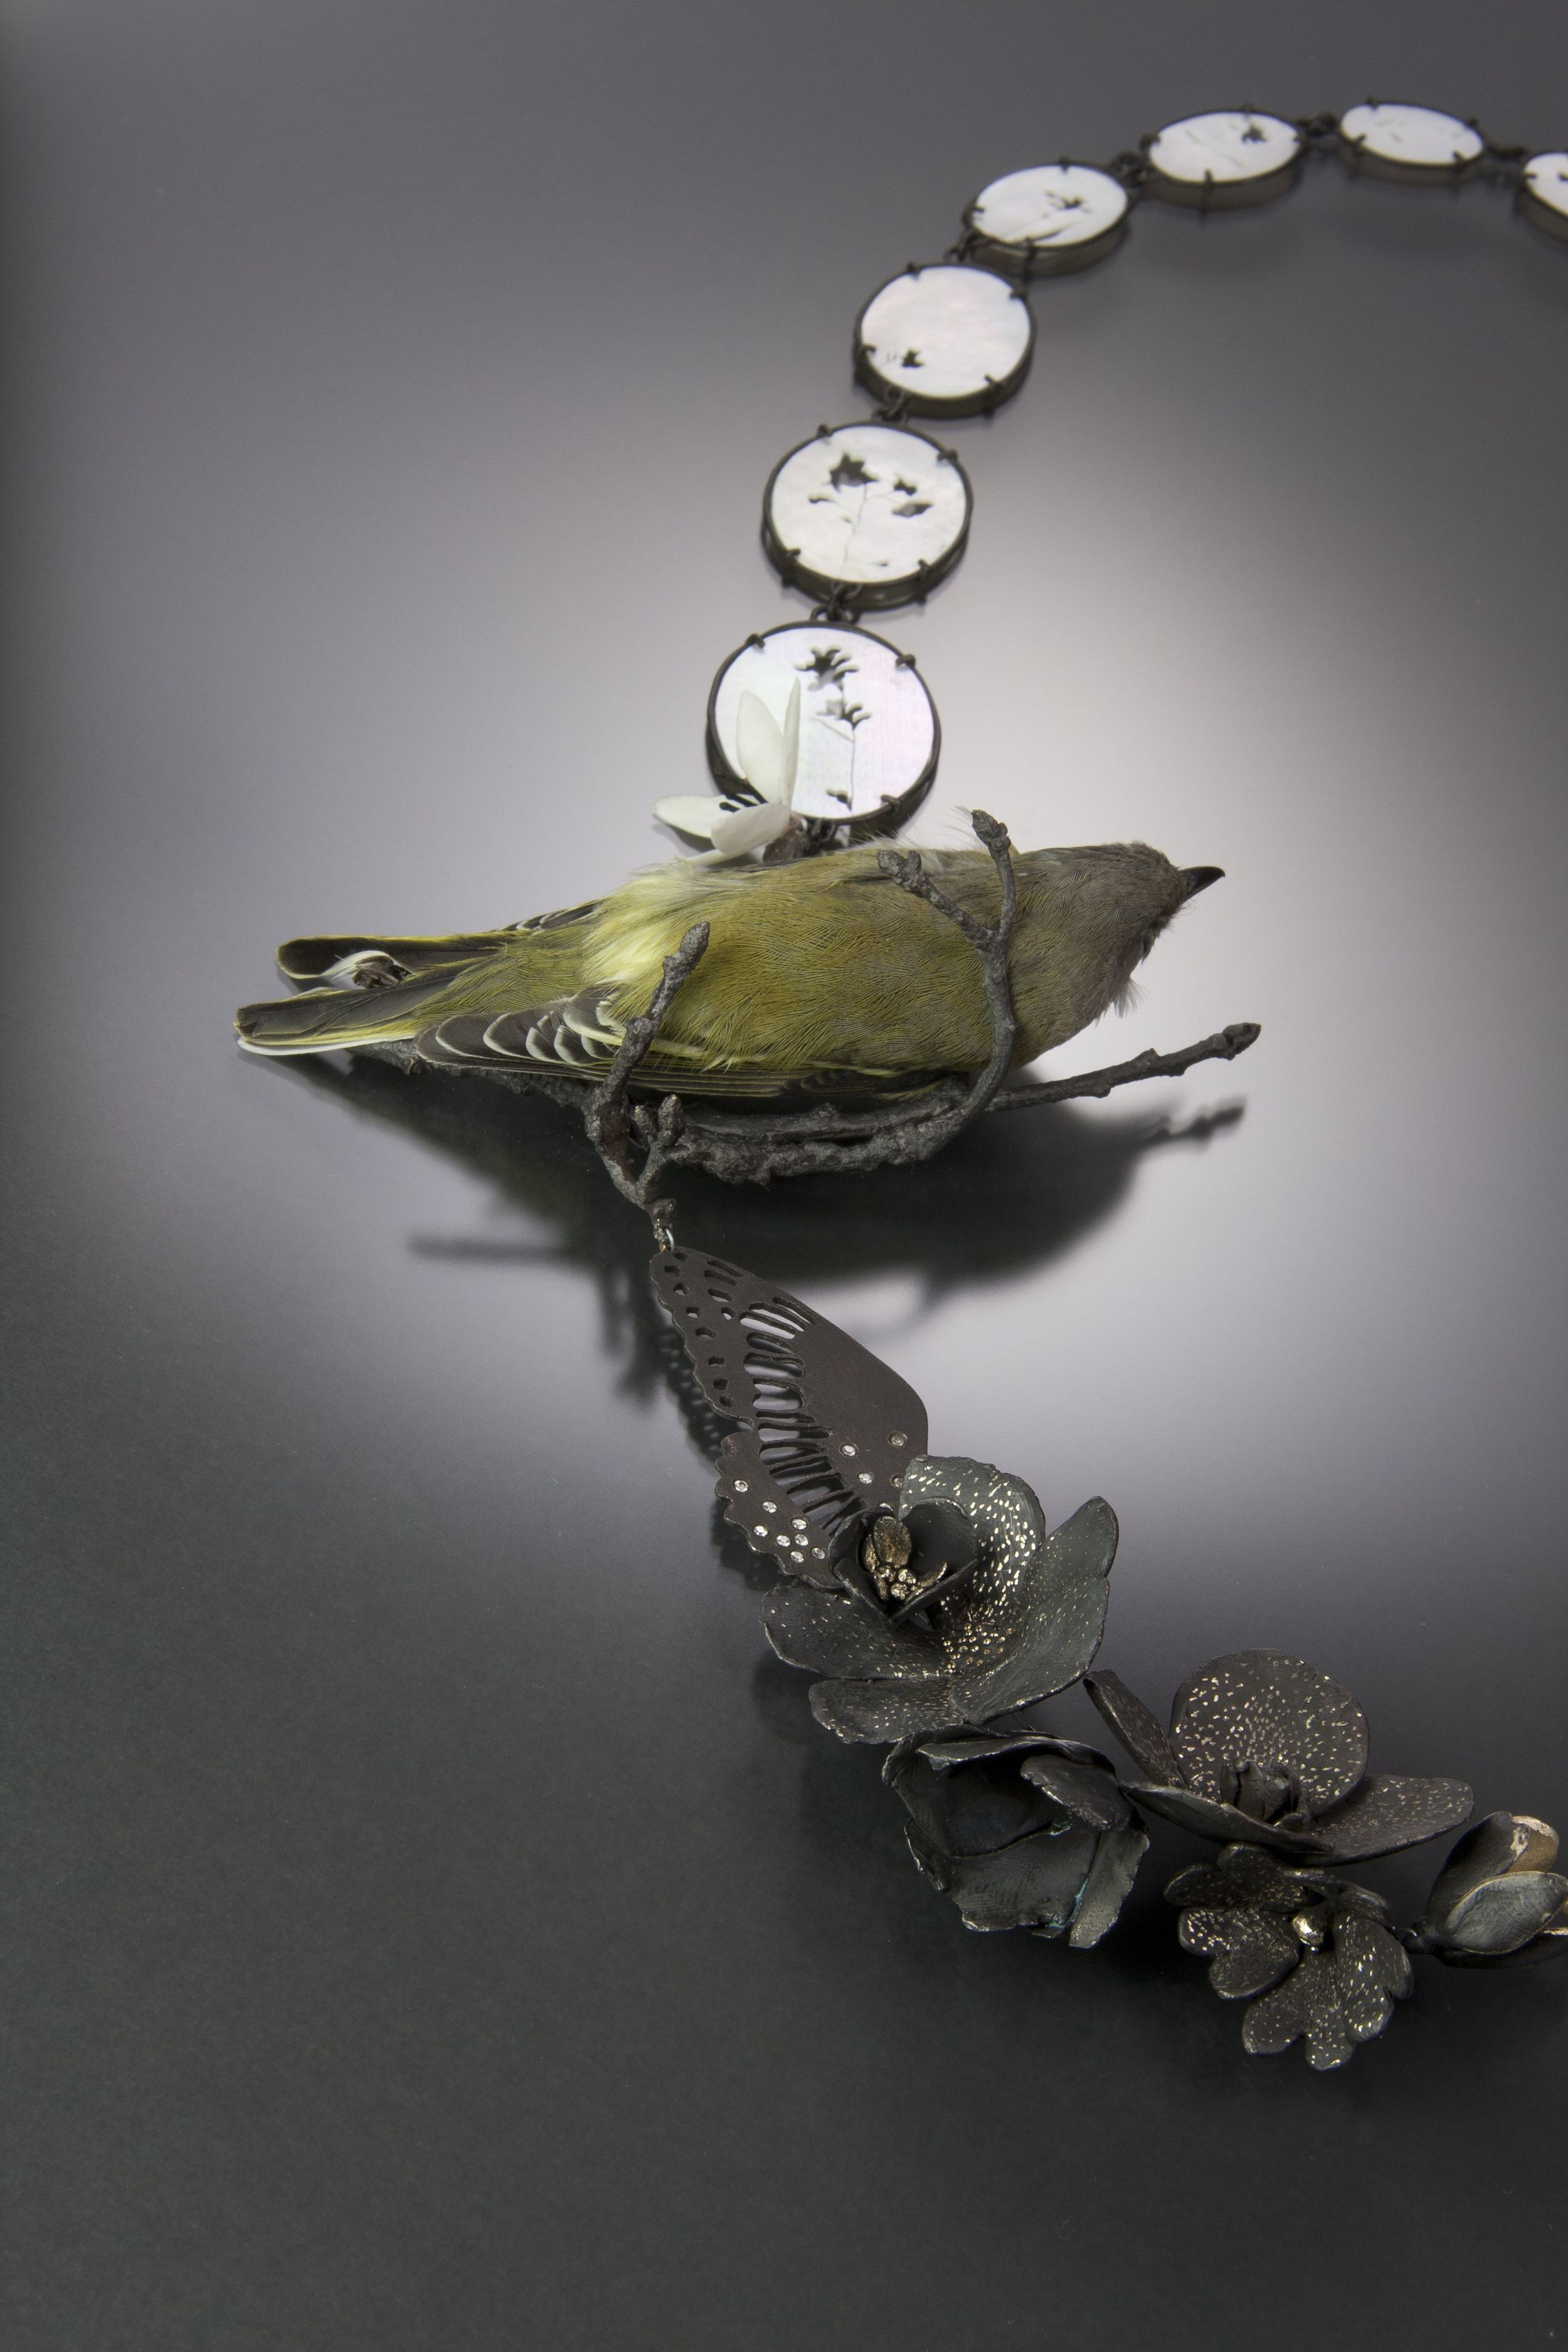 """Two Birds (detail)    Kelly Jean Conroy, 2013  20"""" x 8"""" x 1.5""""  Sterling silver, bronze, copper, bone, mother-of-pearl, cubic zirconia, preserves vireo, sparrow skeleton"""